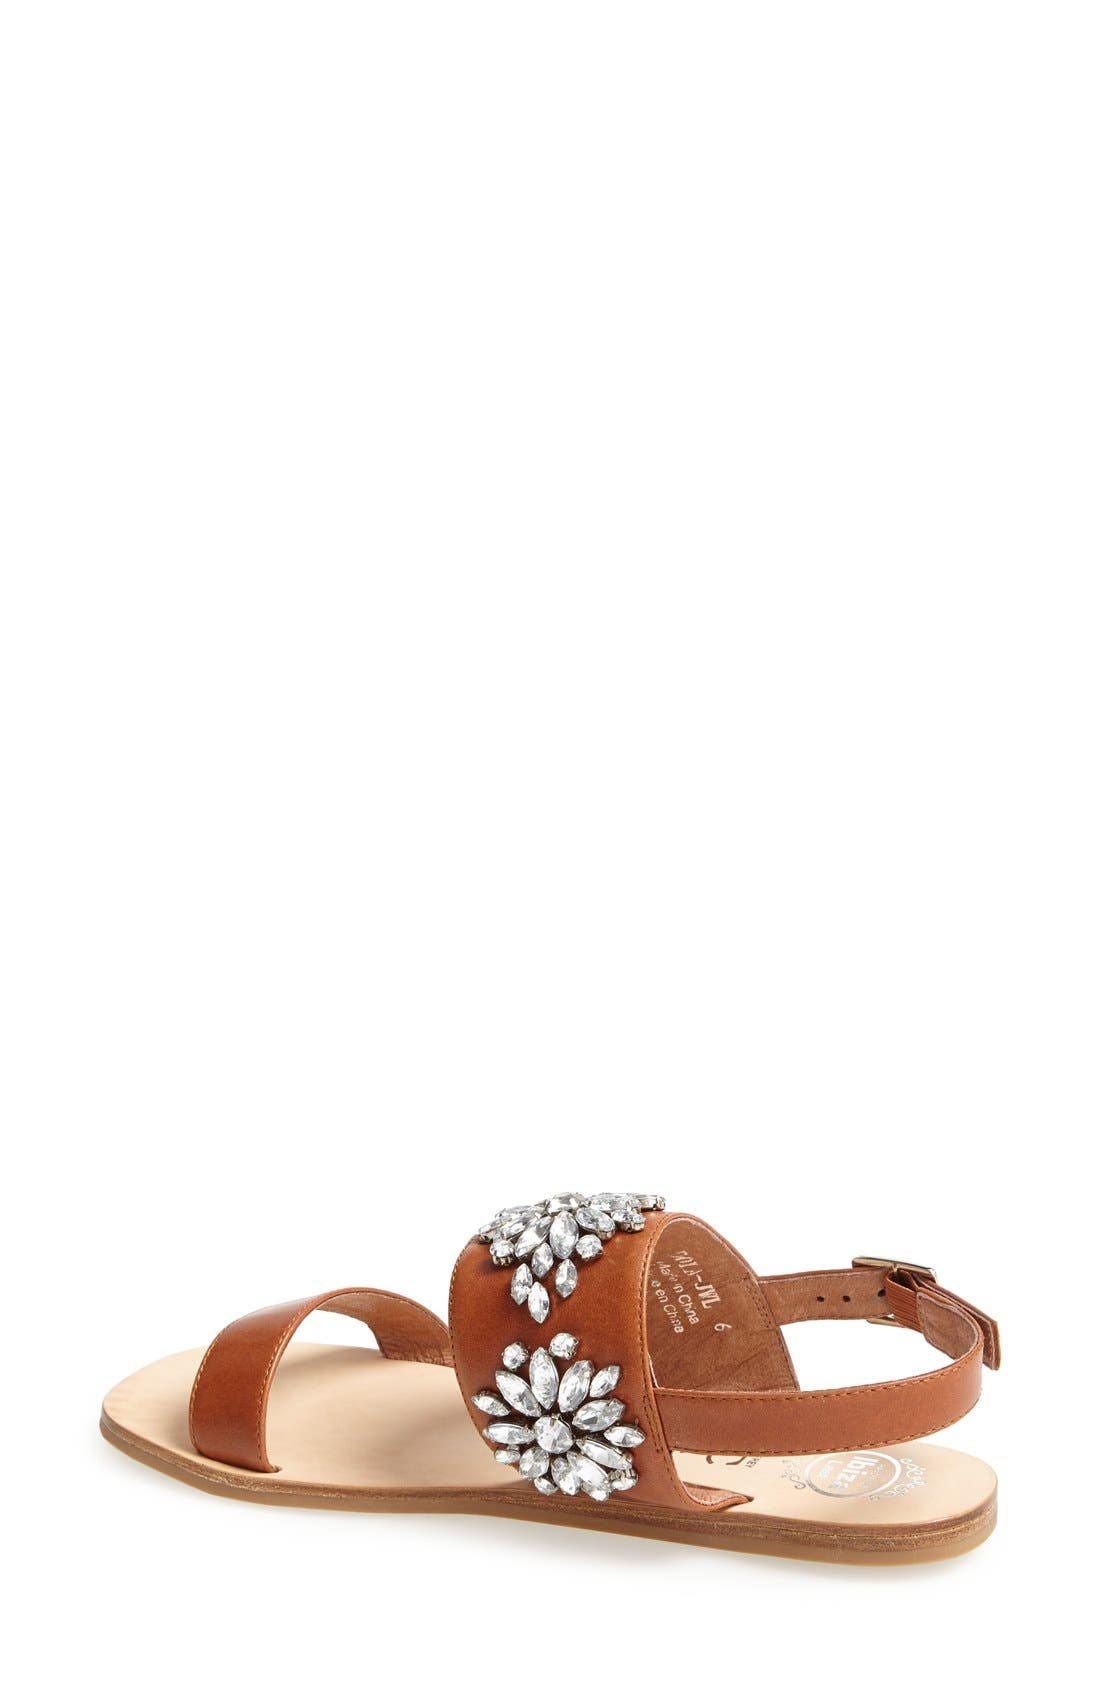 Alternate Image 2  - Jeffrey Campbell 'Dola' Jeweled Leather Sandal (Women)